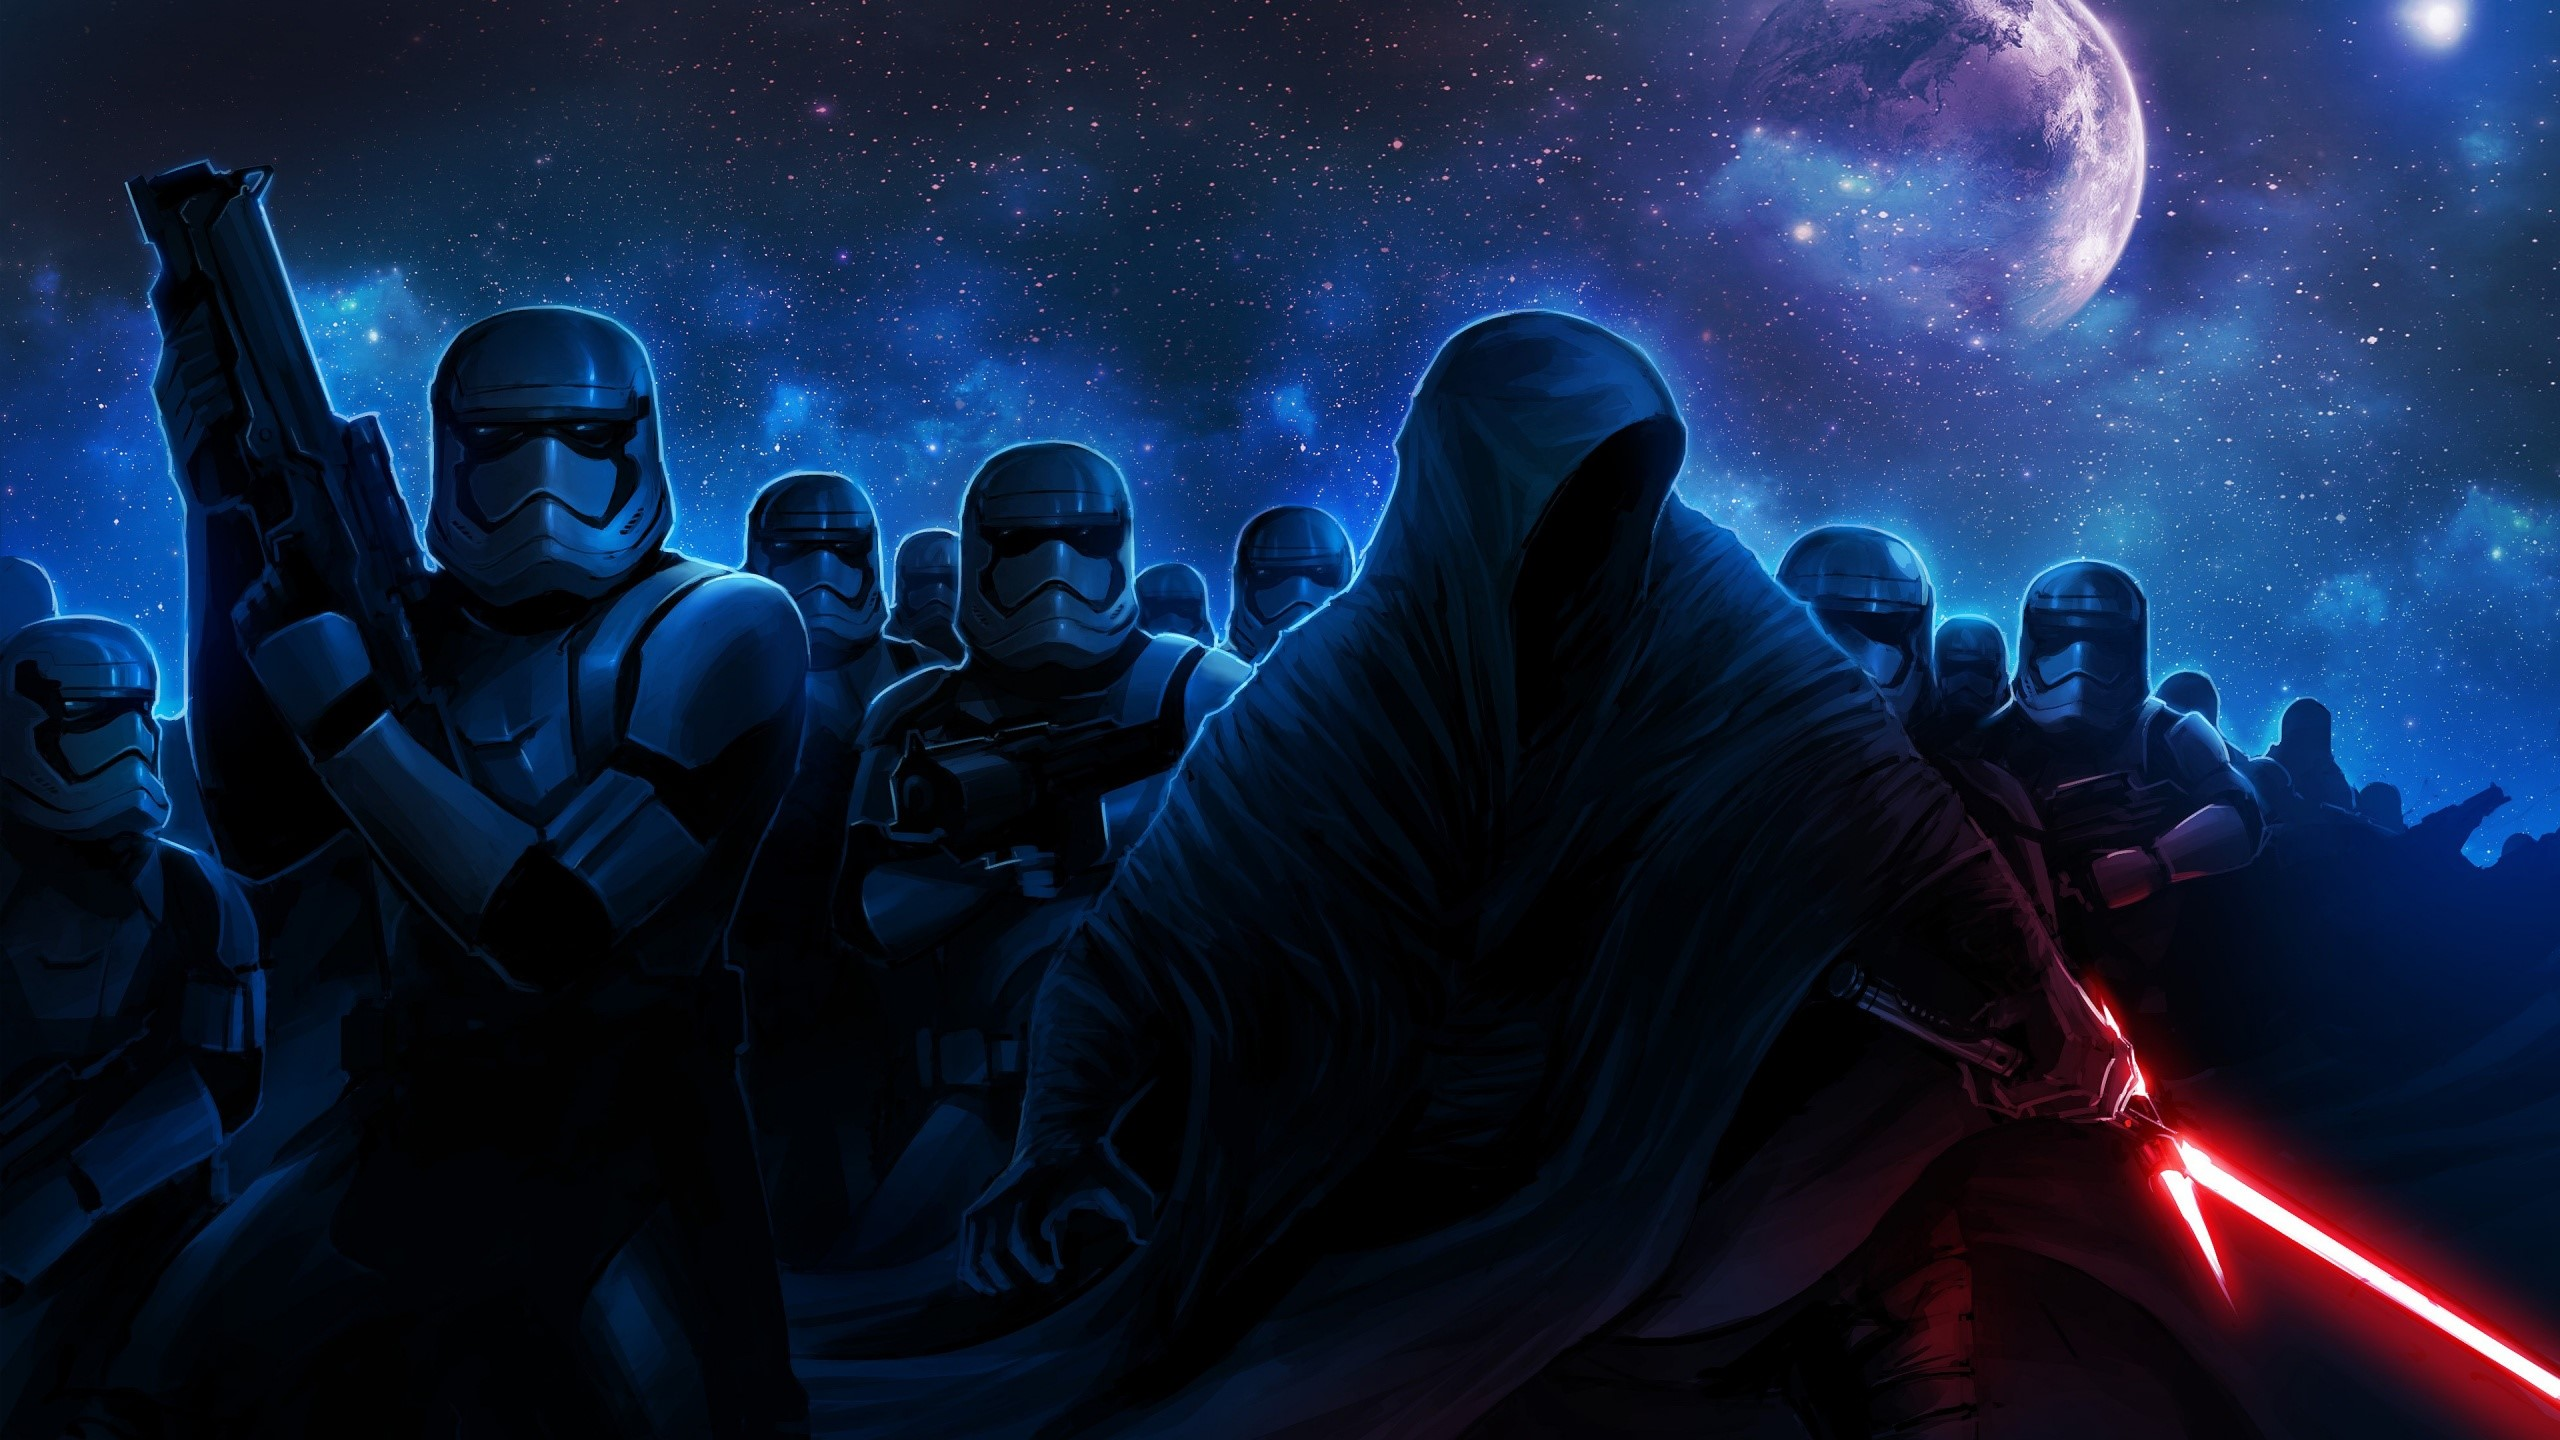 Stormtroopers And Darth Vader Wallpaper 2k Quad Hd Id1654